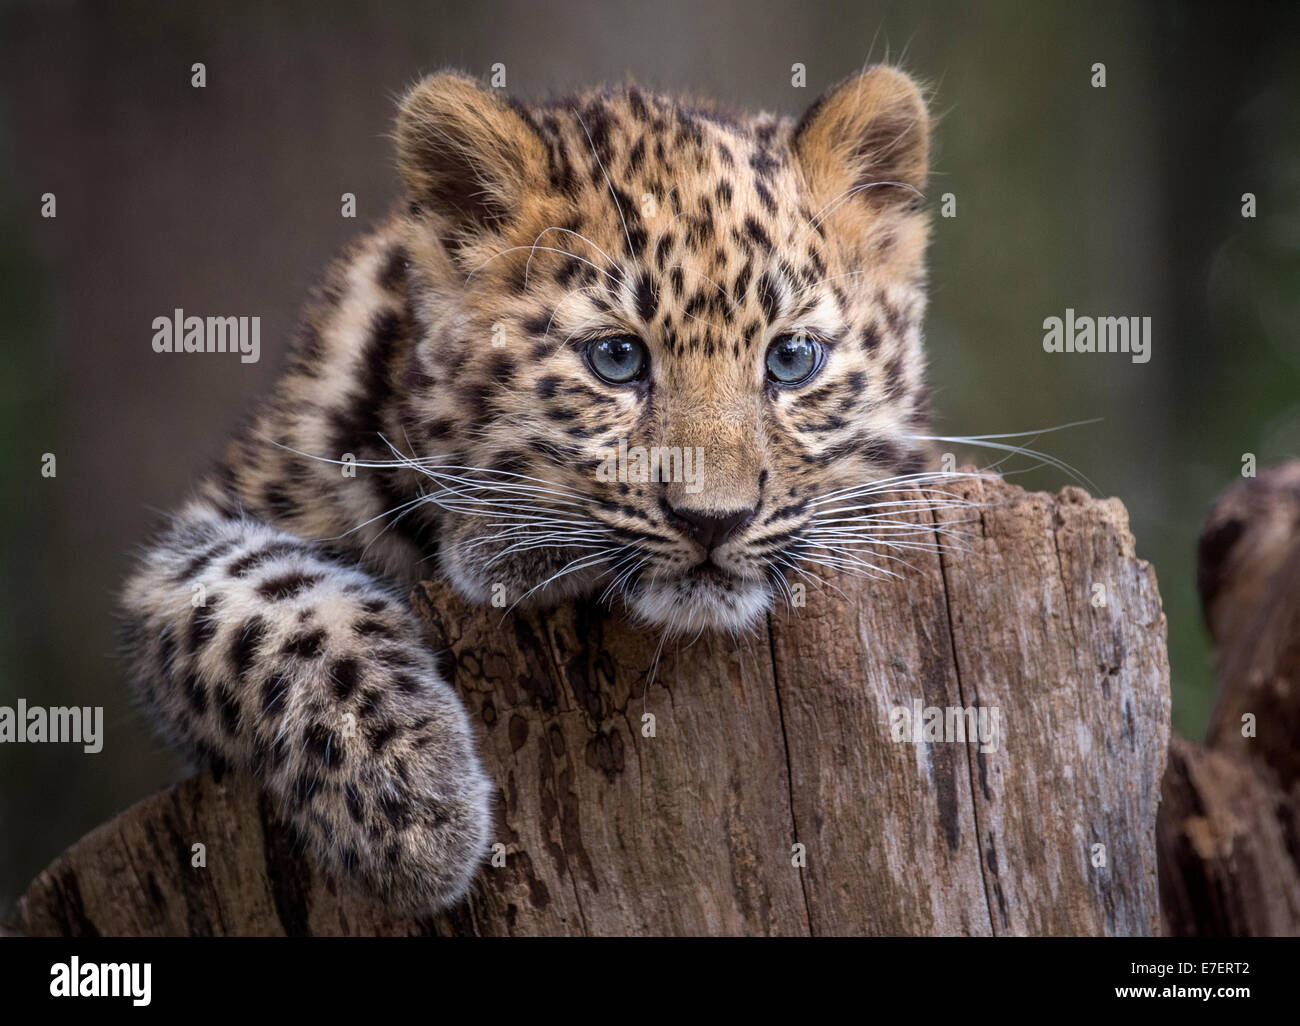 Female Amur leopard cub on tree stump - Stock Image